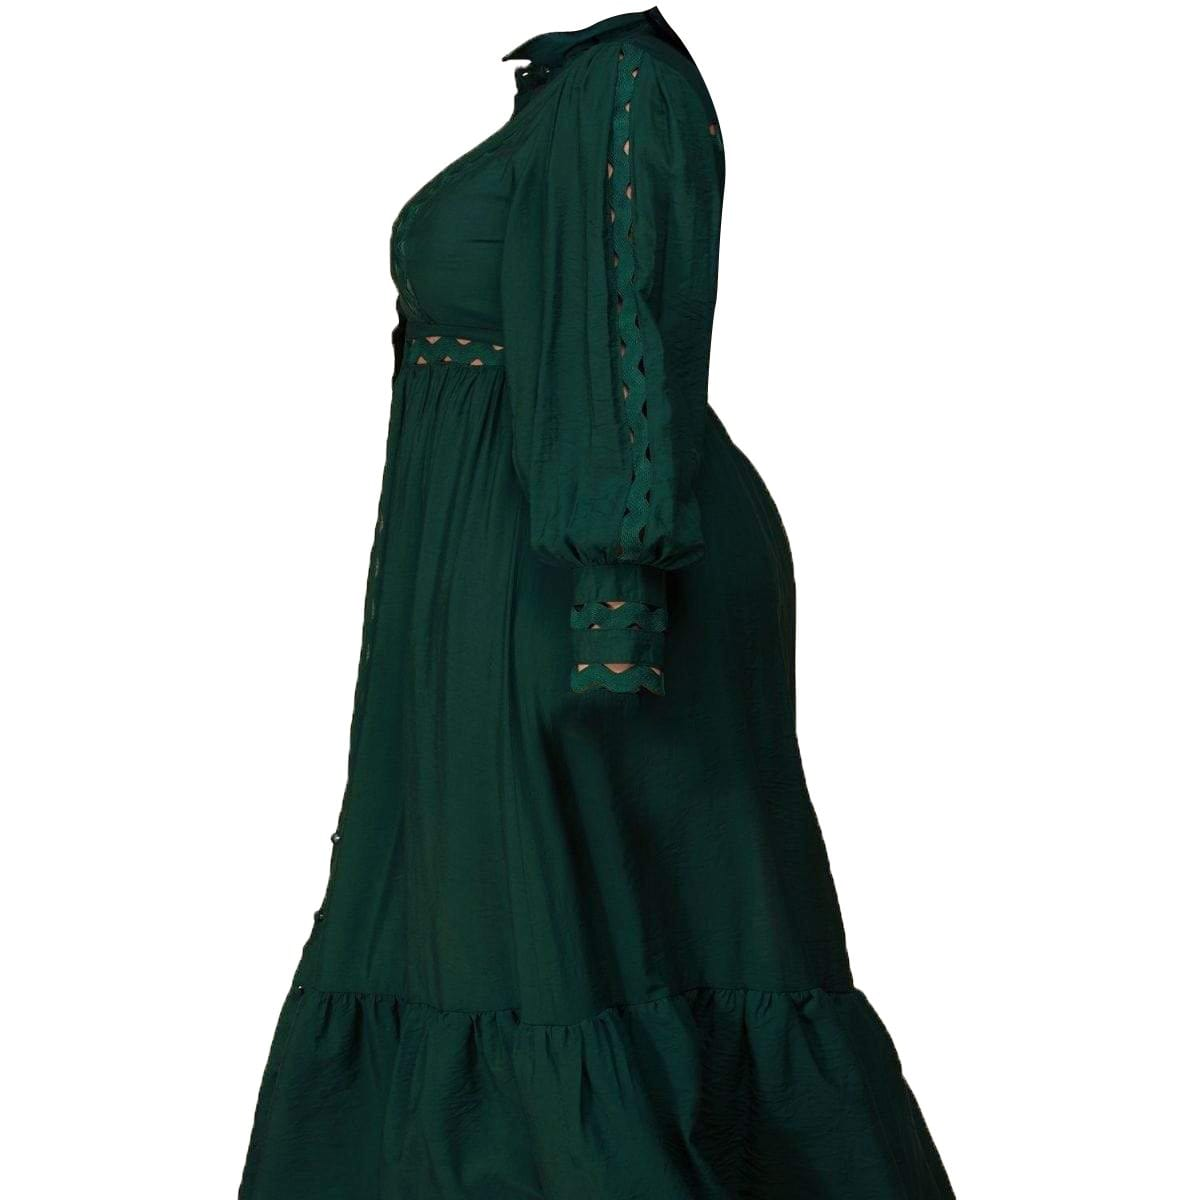 Posh Shoppe: Whimsical Maxi Dress- Teal Dress